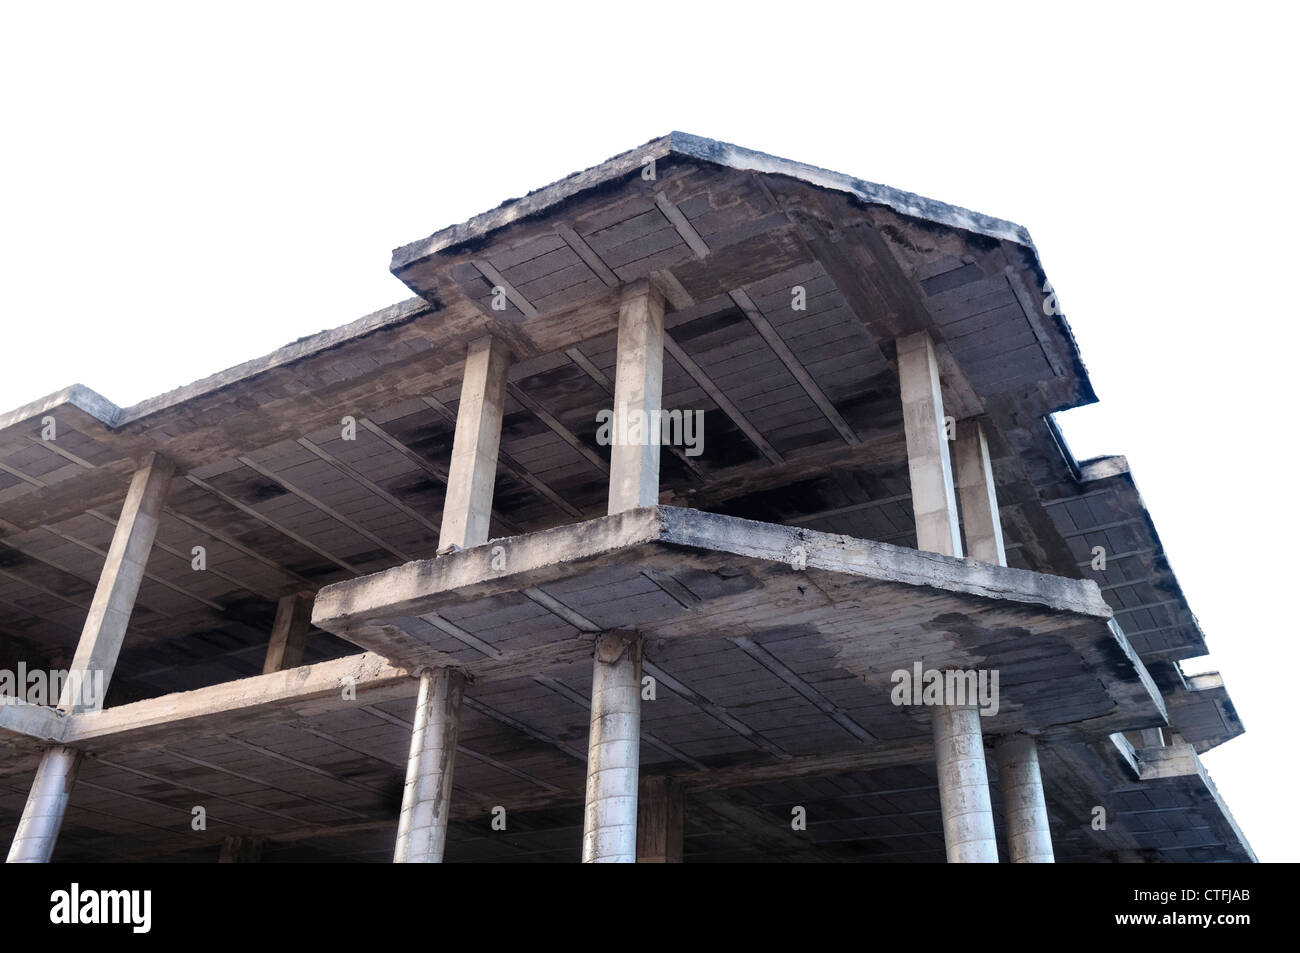 Unfinished incomplete concrete building in Spain - Stock Image